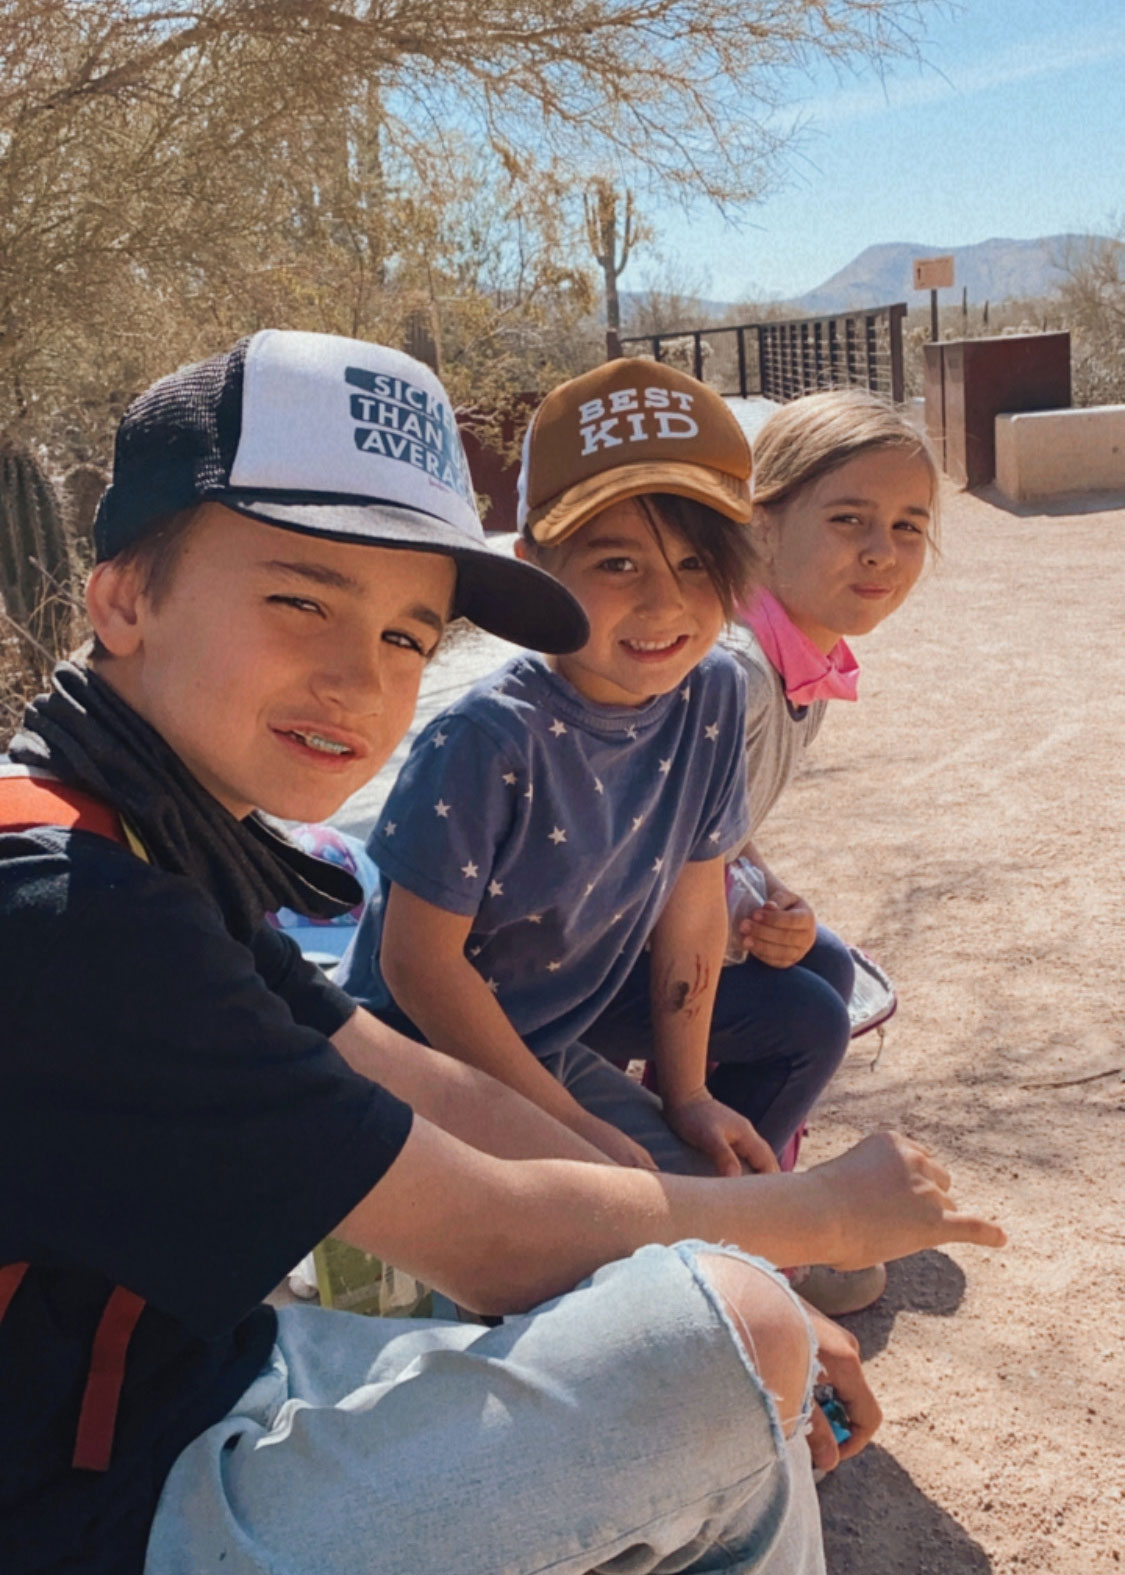 hiking in arizona in the spring with kids and the whole family! #thelovedesignedlife #hiking #getoutside #outdoorfamilies #thingstodoinarizona